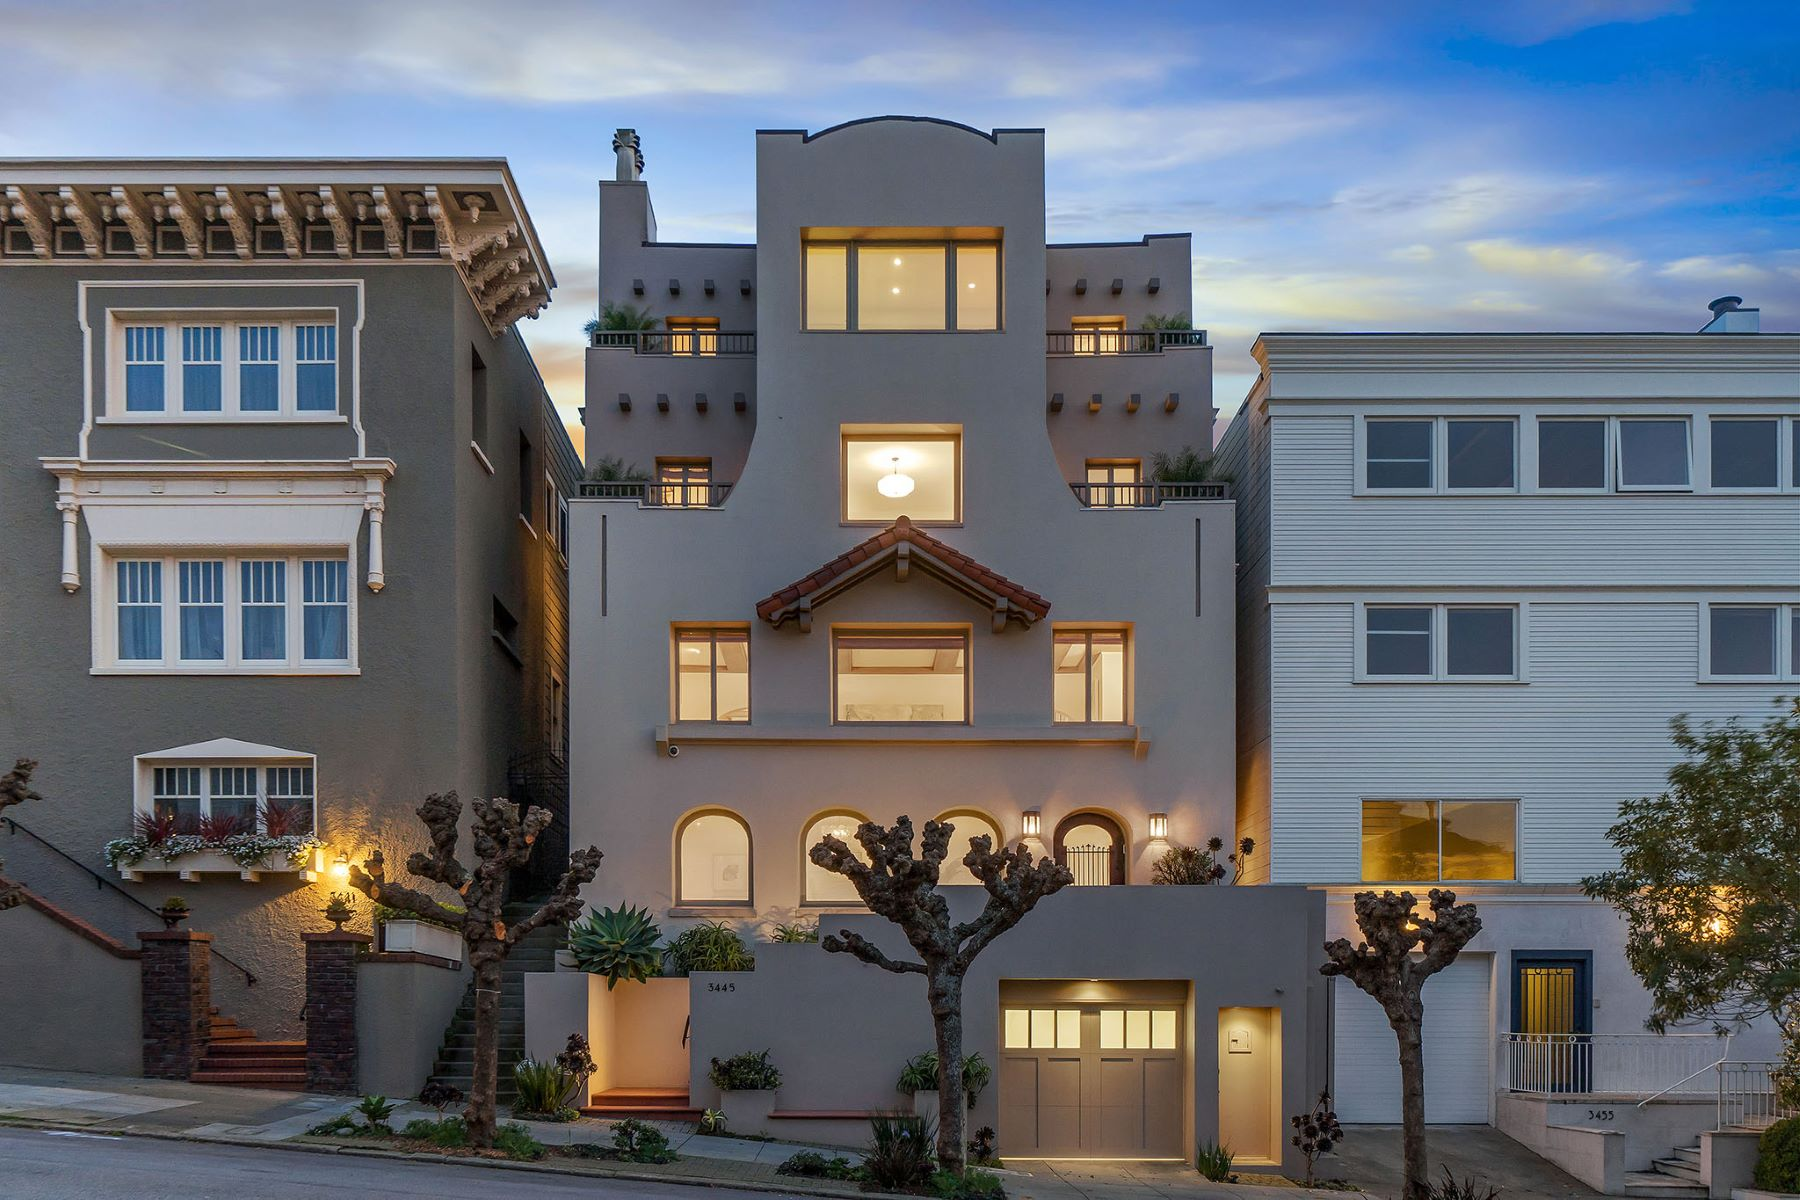 Single Family Homes for Sale at Historical Home in a Premier Location 3445 Washington St, San Francisco, California 94118 United States